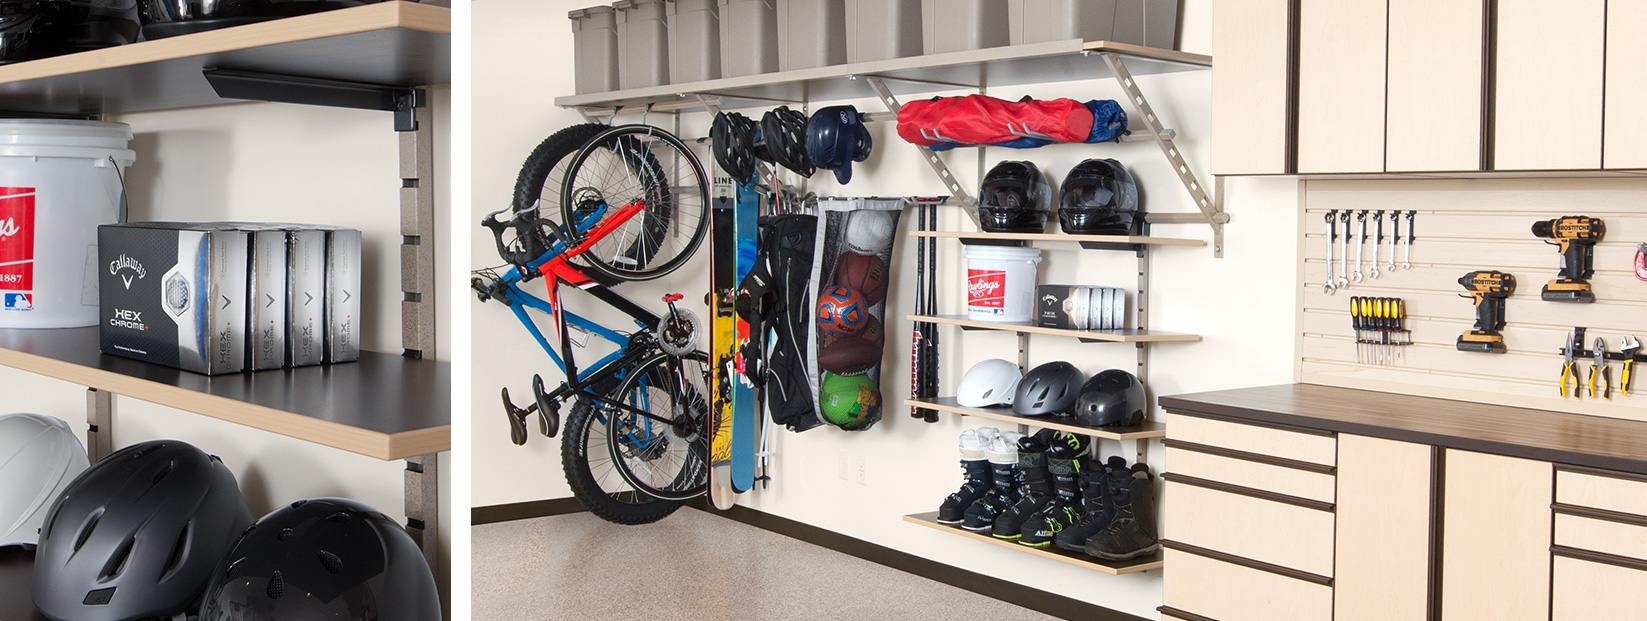 Garage Shelving System Columbus